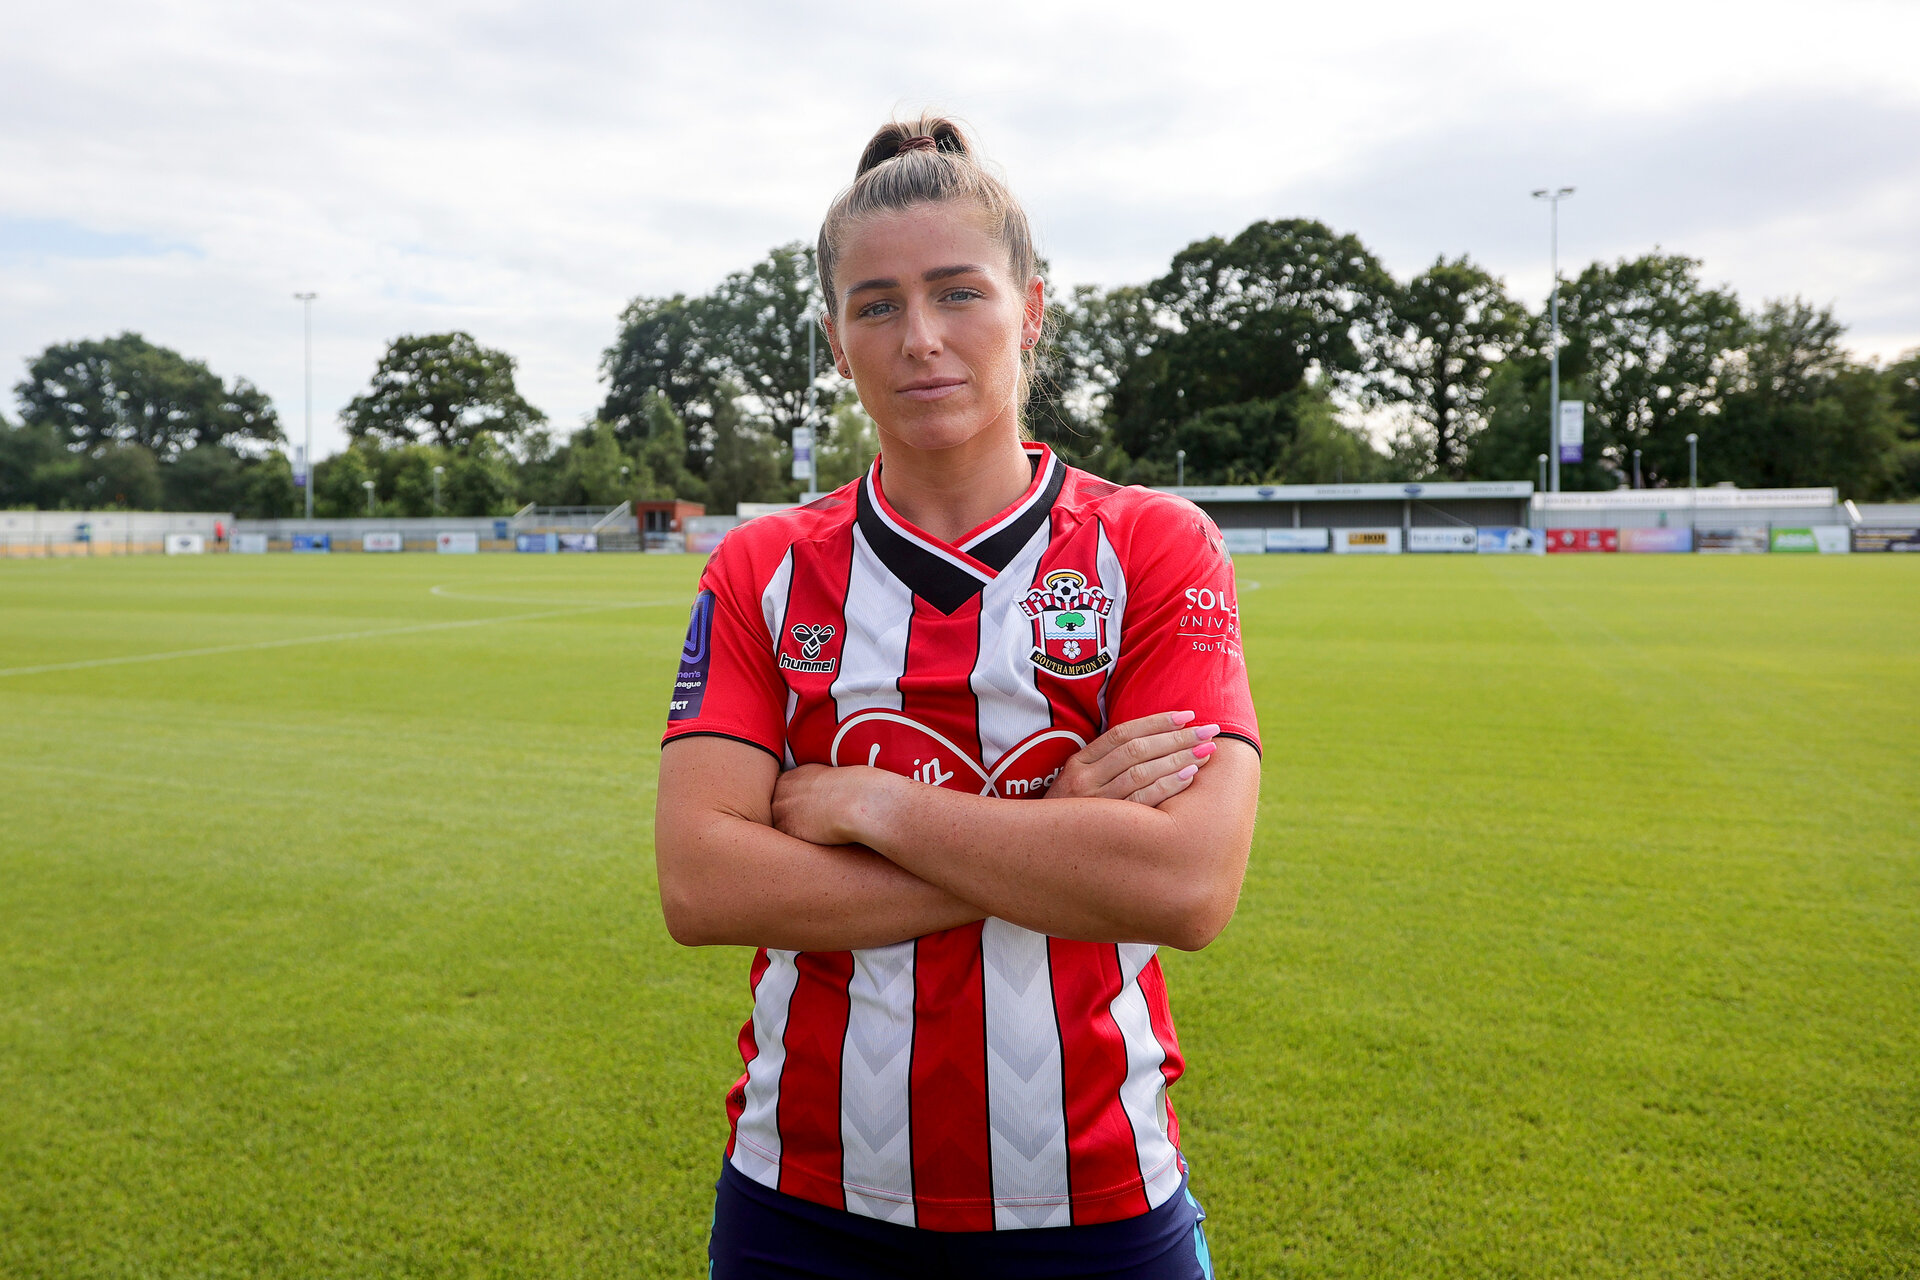 SOUTHAMPTON, ENGLAND - JULY 29:  Ciara Sherwood signing a new contract with Southampton Women's team photographed at Snows Stadium on July 29, 2021 in Southampton, England. (Photo by Isabelle Field/Southampton FC via Getty Images)